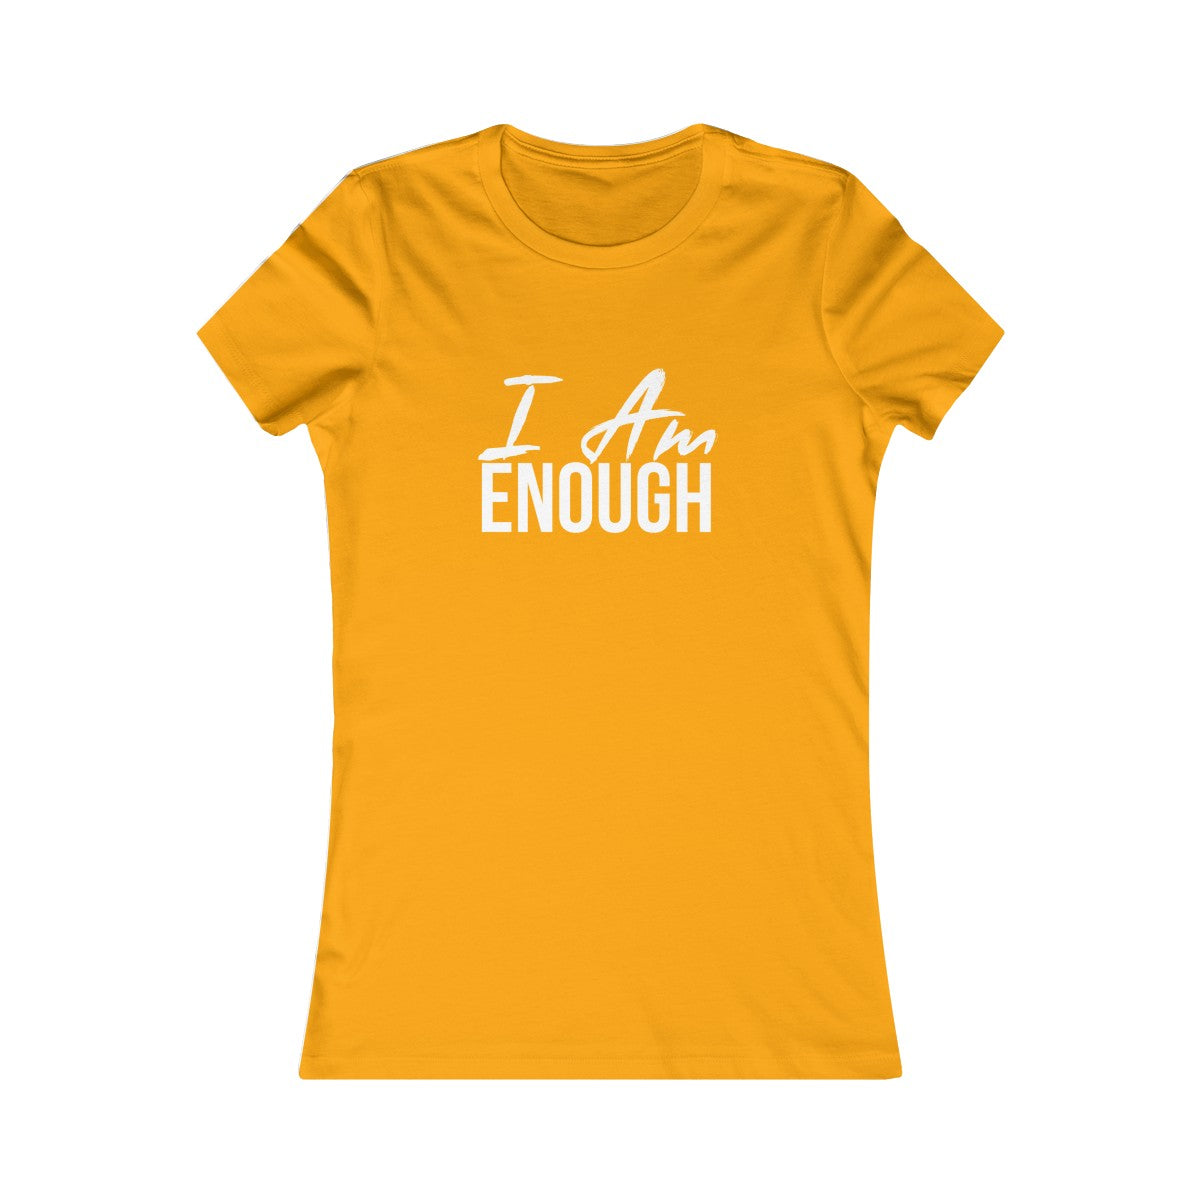 Women's I AM ENOUGH Tee - Peyticakes